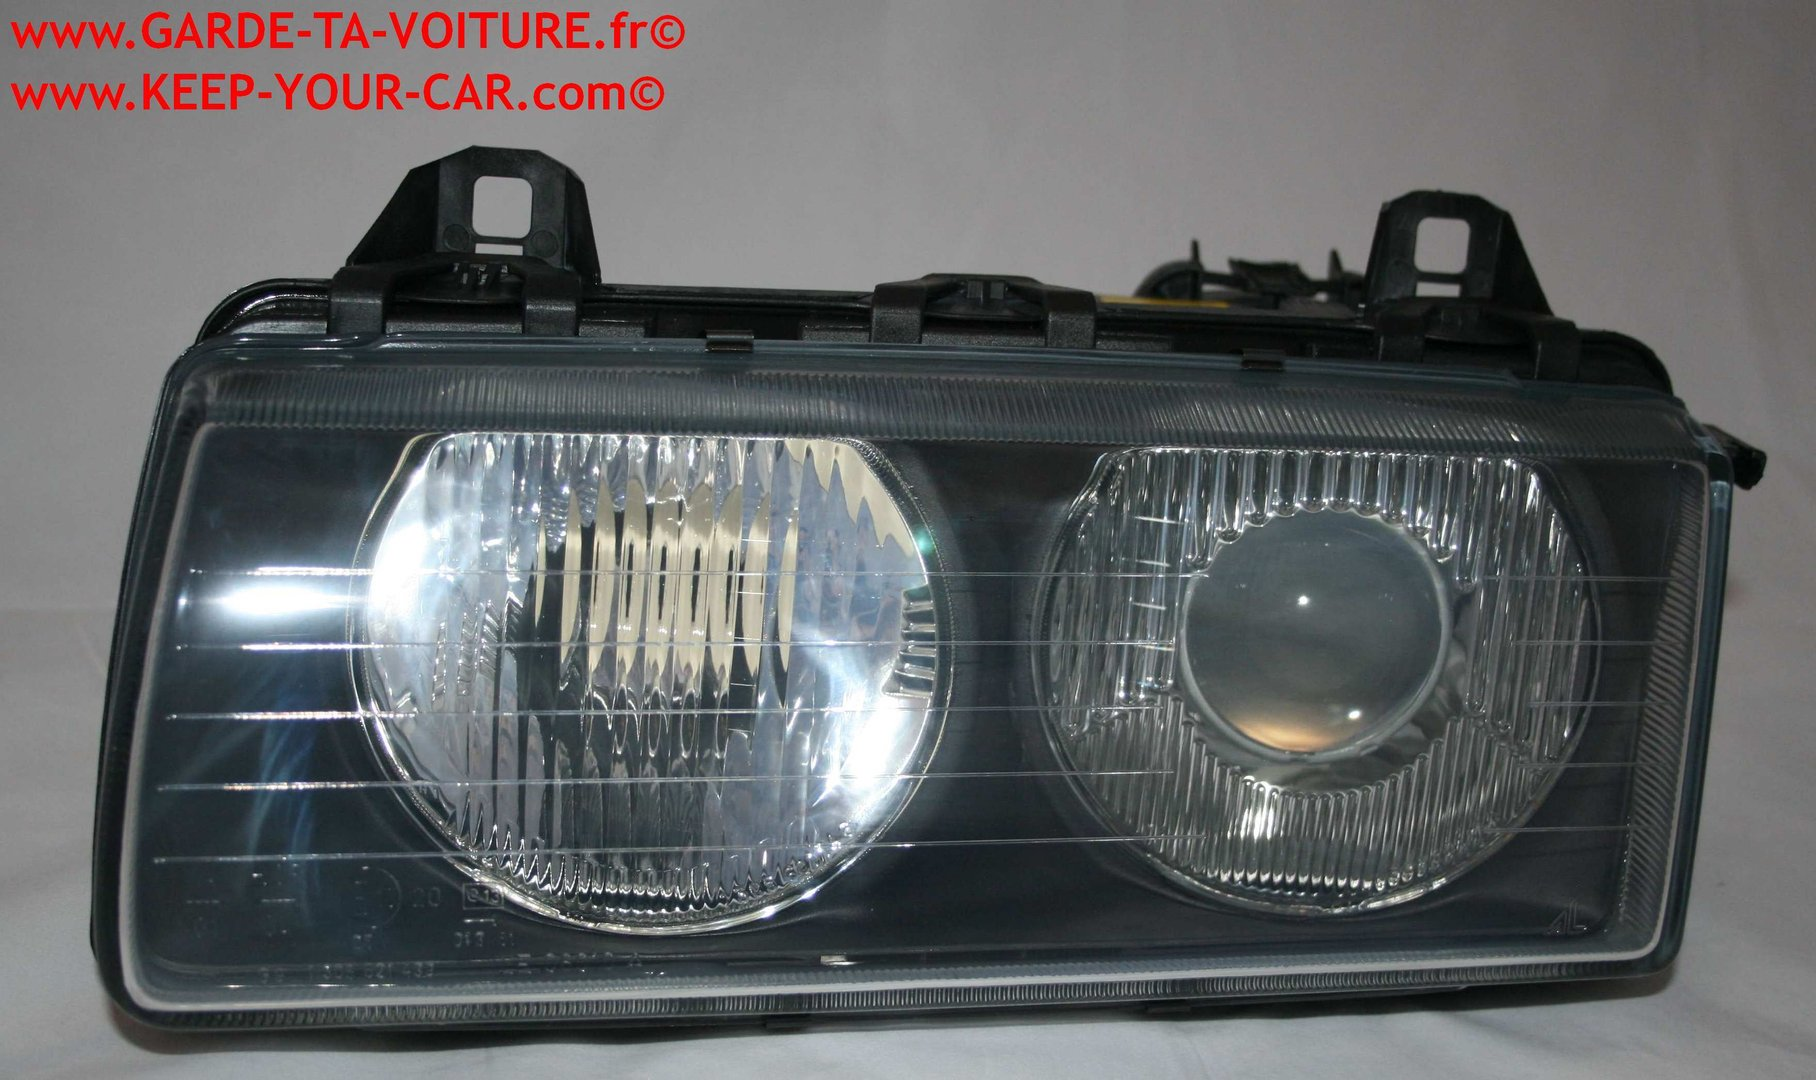 neuware original bosch bmw e36 frontscheinwerfer komplett. Black Bedroom Furniture Sets. Home Design Ideas